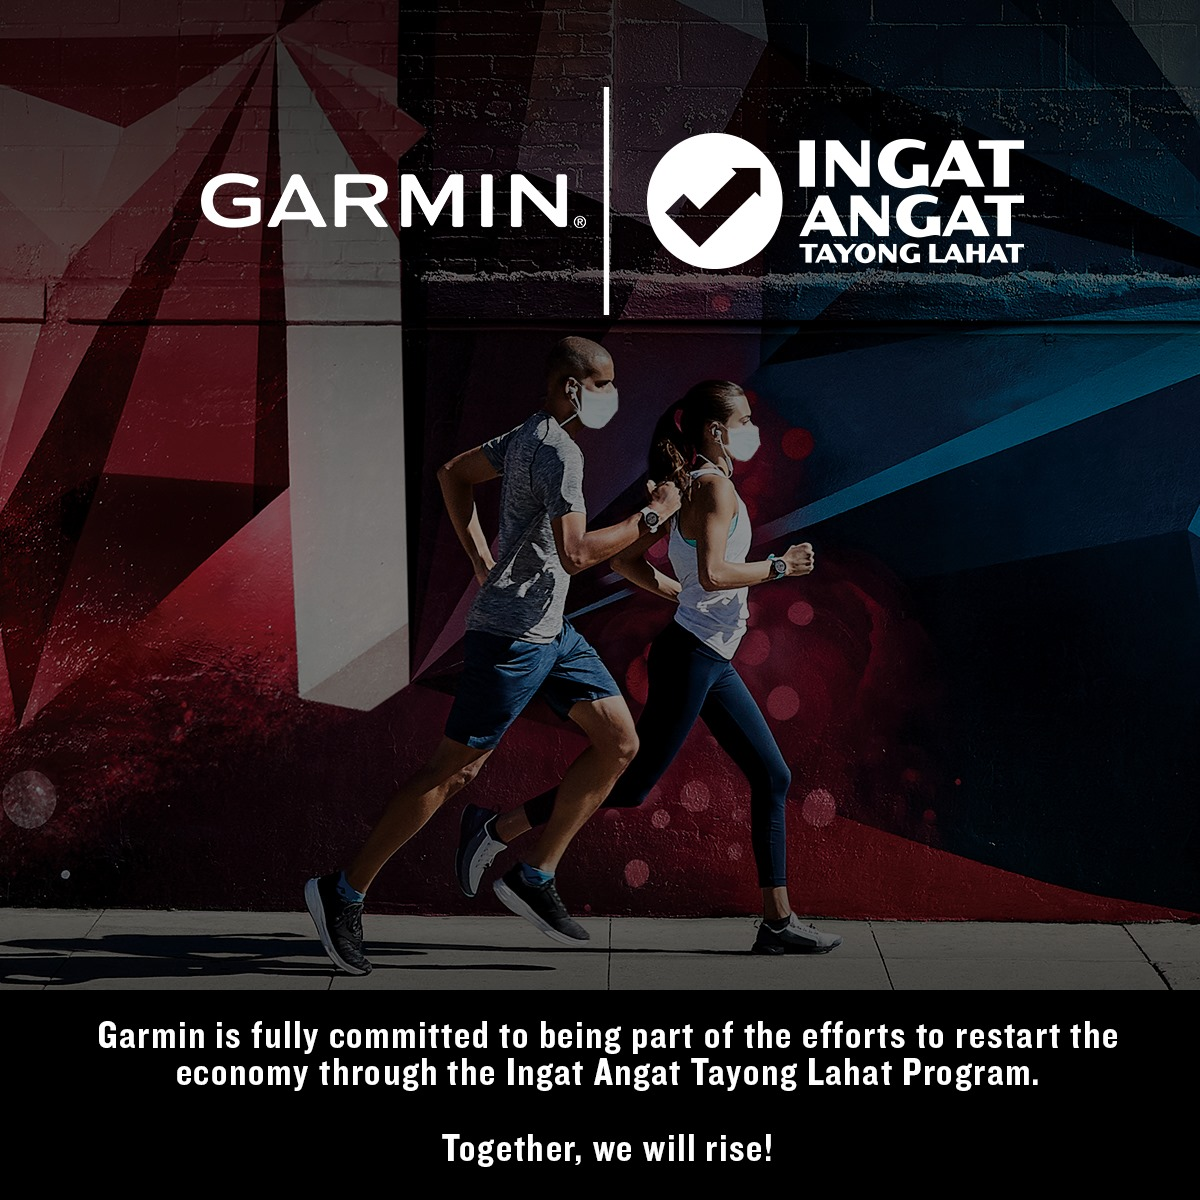 Garmin Philippines is fully committed to being part of the efforts to re-start the economy.